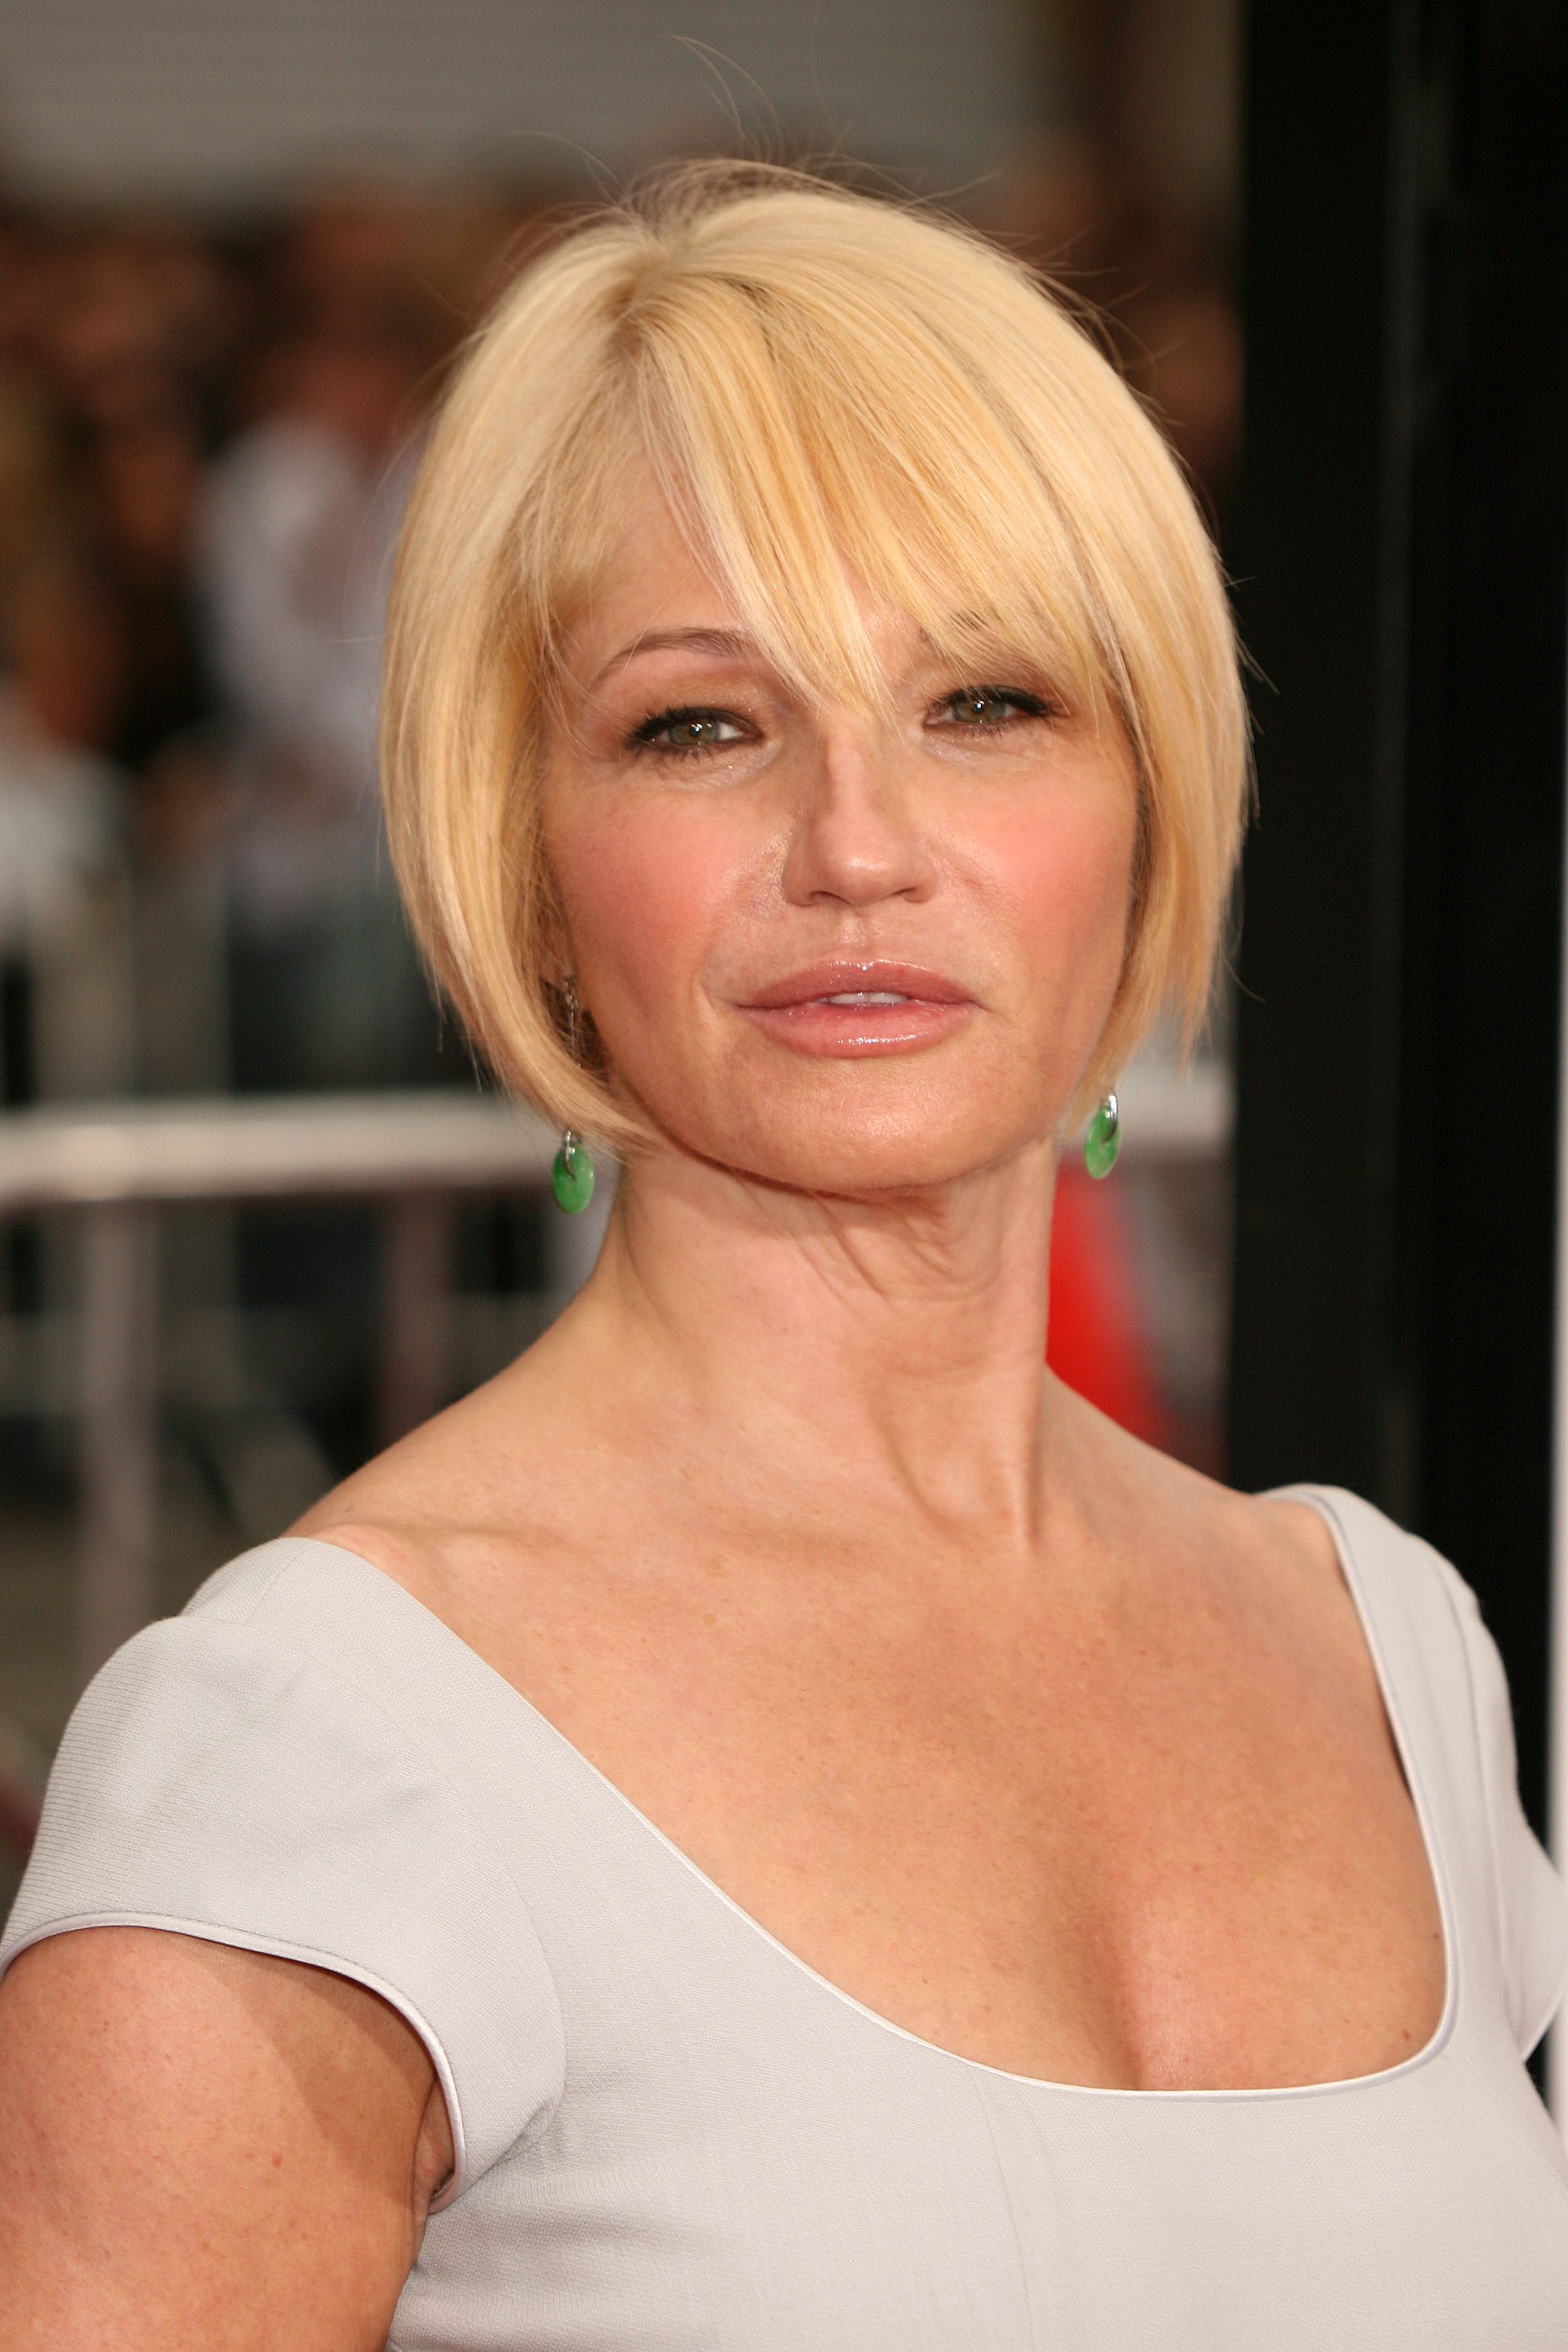 top people ellen barkin